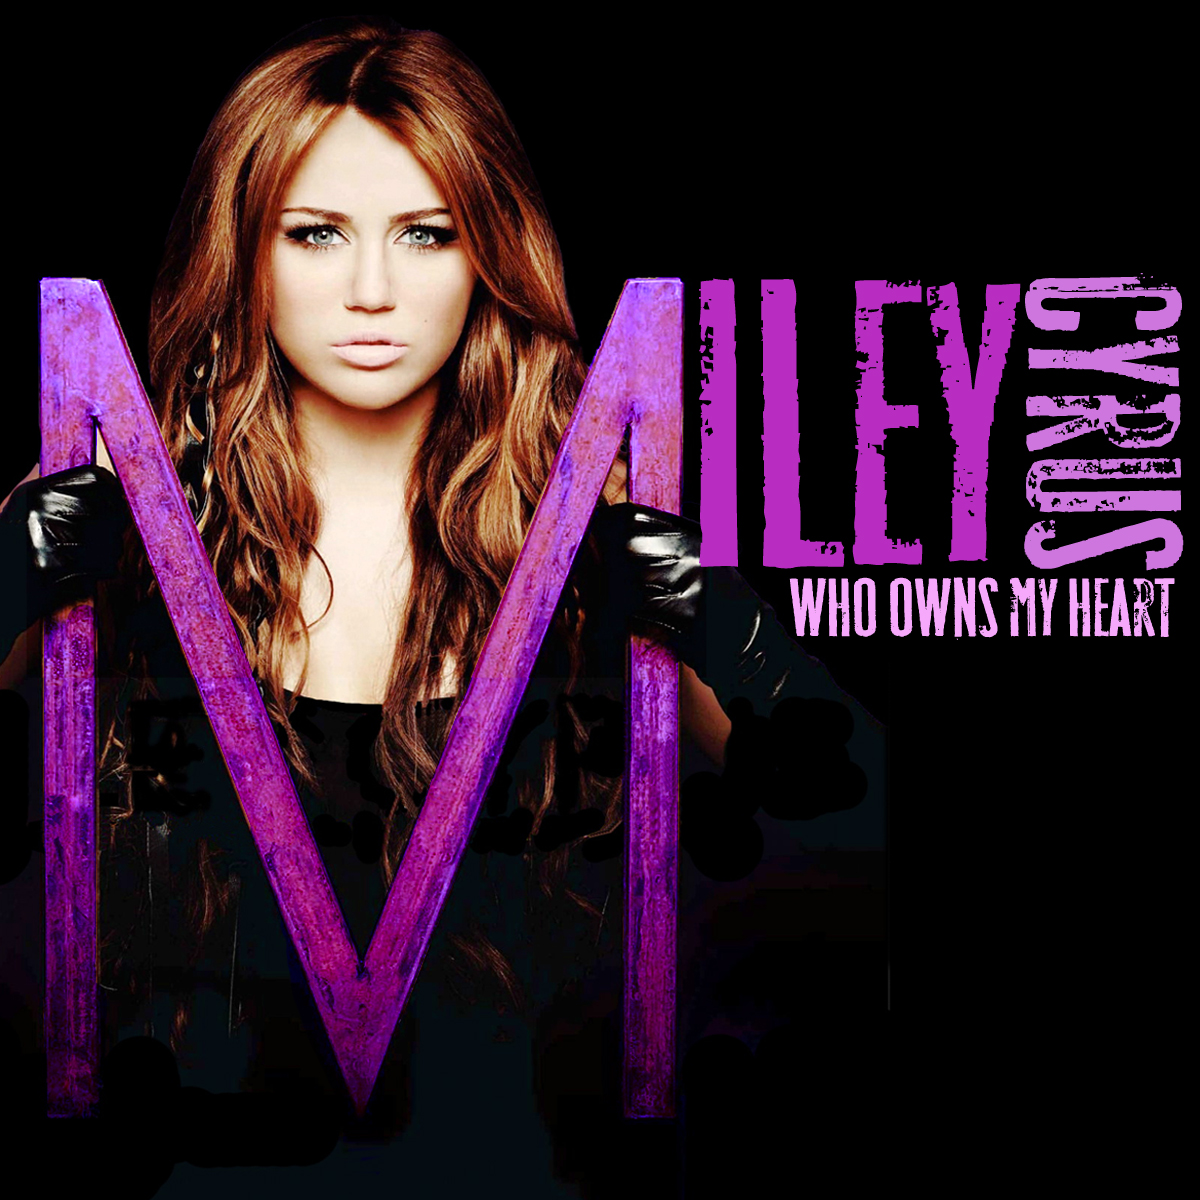 The United States of the Solar System, A.D. 2133 (Book Five) Miley-Cyrus-Who-Owns-My-Heart-FanMade